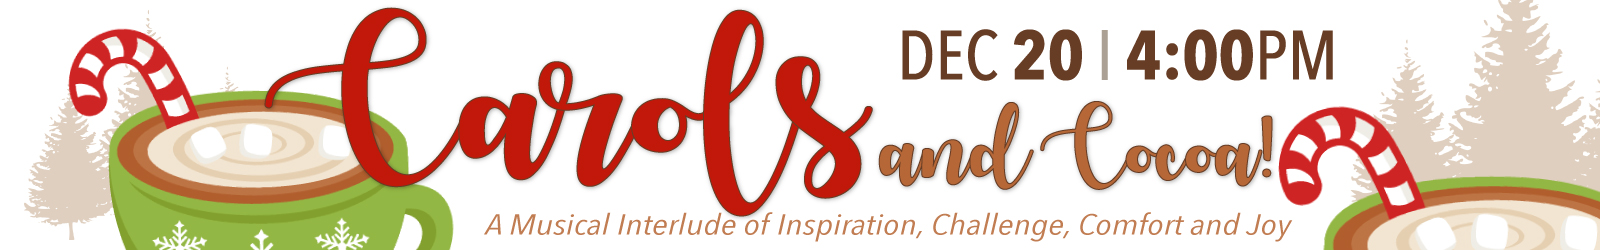 Facebook Event Page for Carols and Cocoa a musical interlude of inspiration